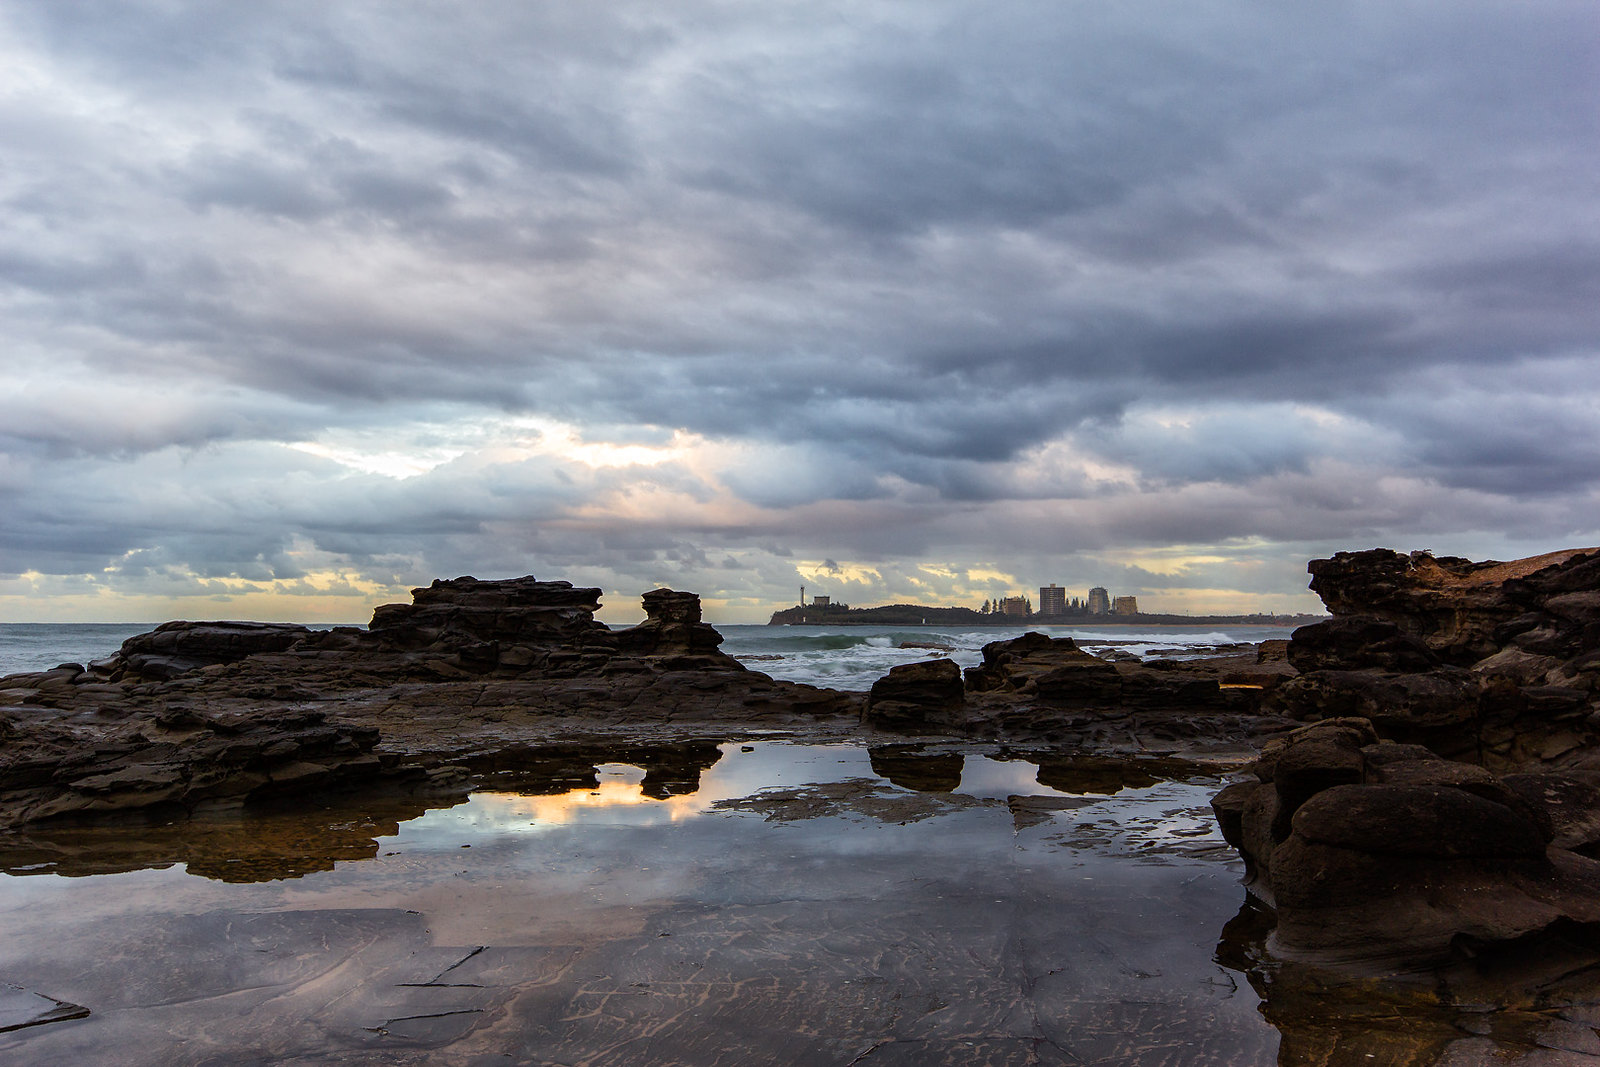 On The Rocks at Mooloolaba